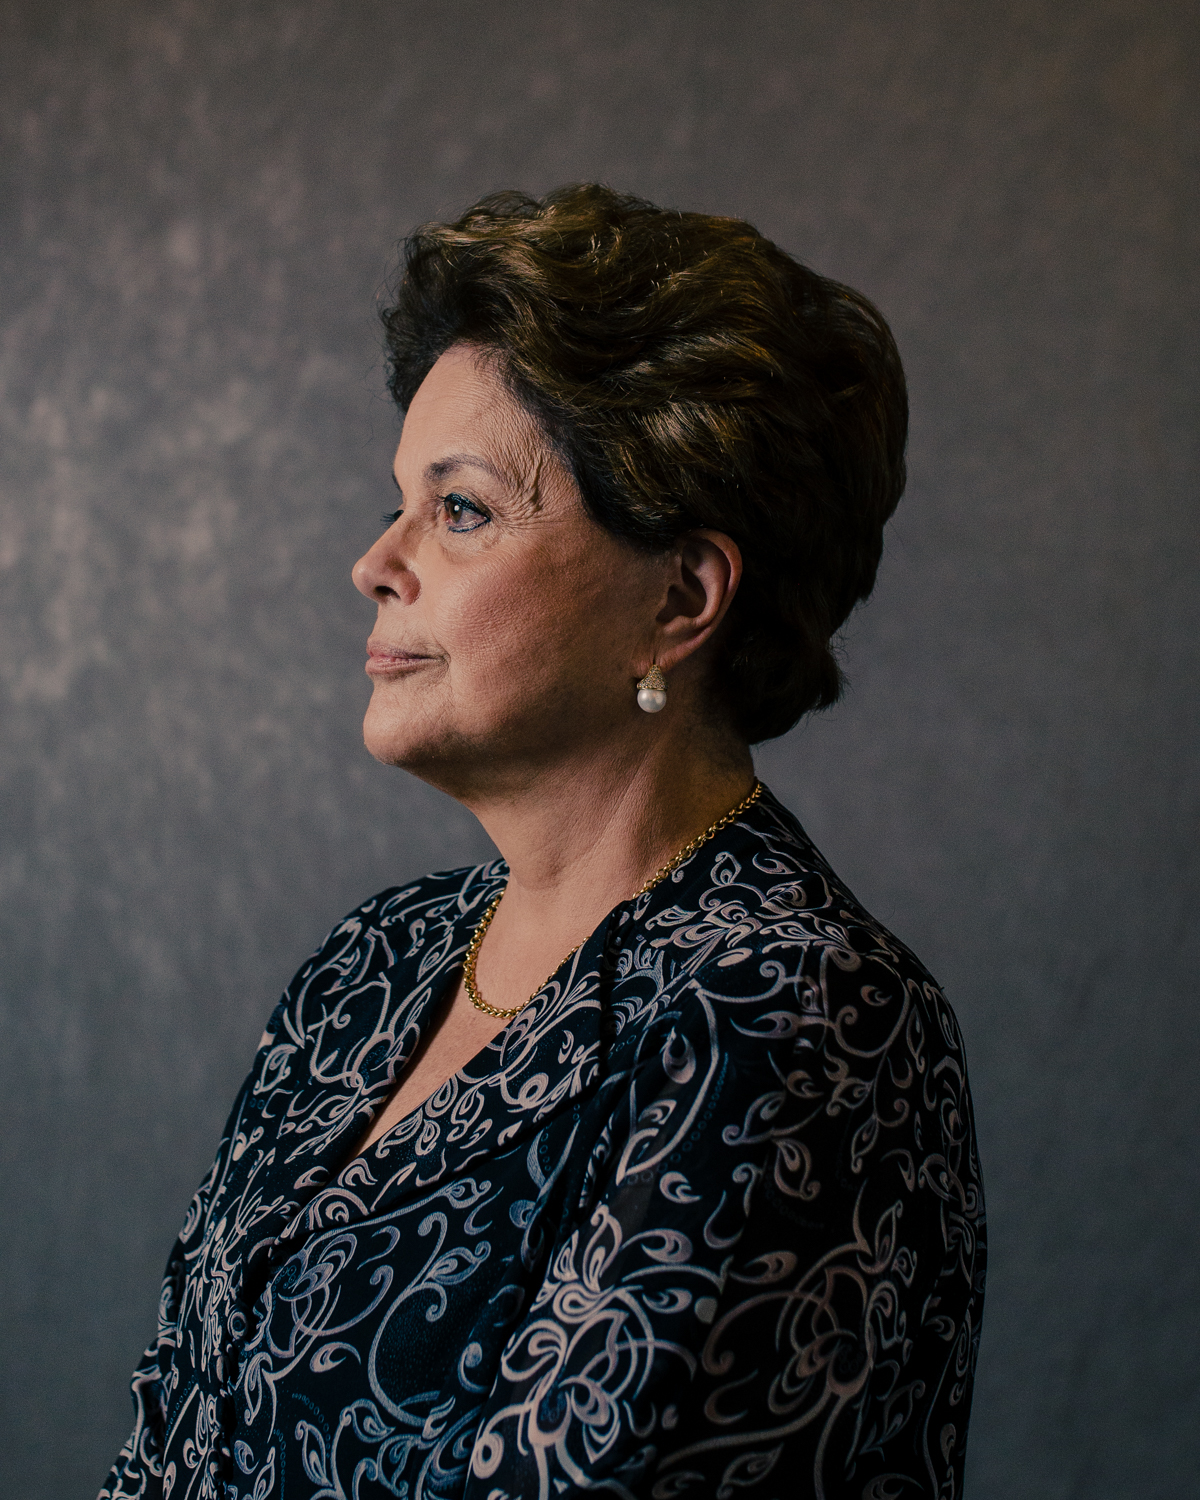 Ex-Brazilian president Dilma Rousseff, who was impeached in August 2016 on charges of criminal administrative conduct. Photographed for Monocle.